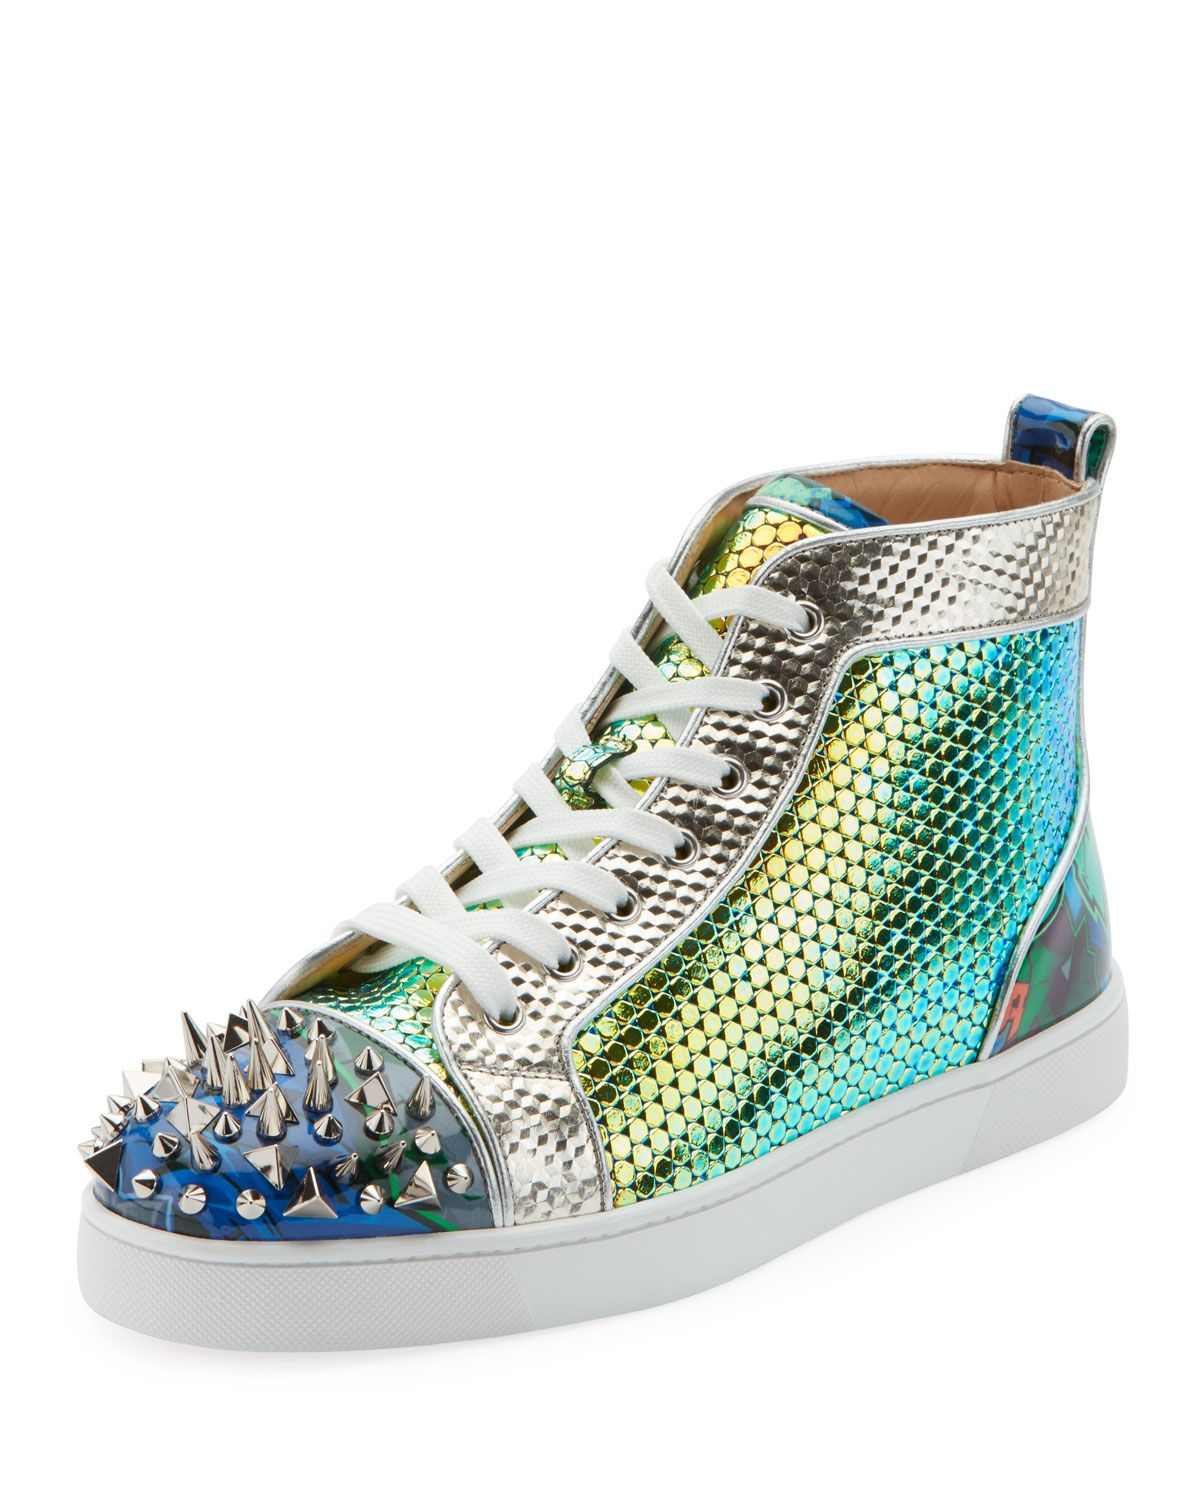 fea95e3fe786 CHRISTIAN LOUBOUTIN MEN S SPIKED METALLIC HOLOGRAPHIC MID-TOP SNEAKERS.   christianlouboutin  shoes